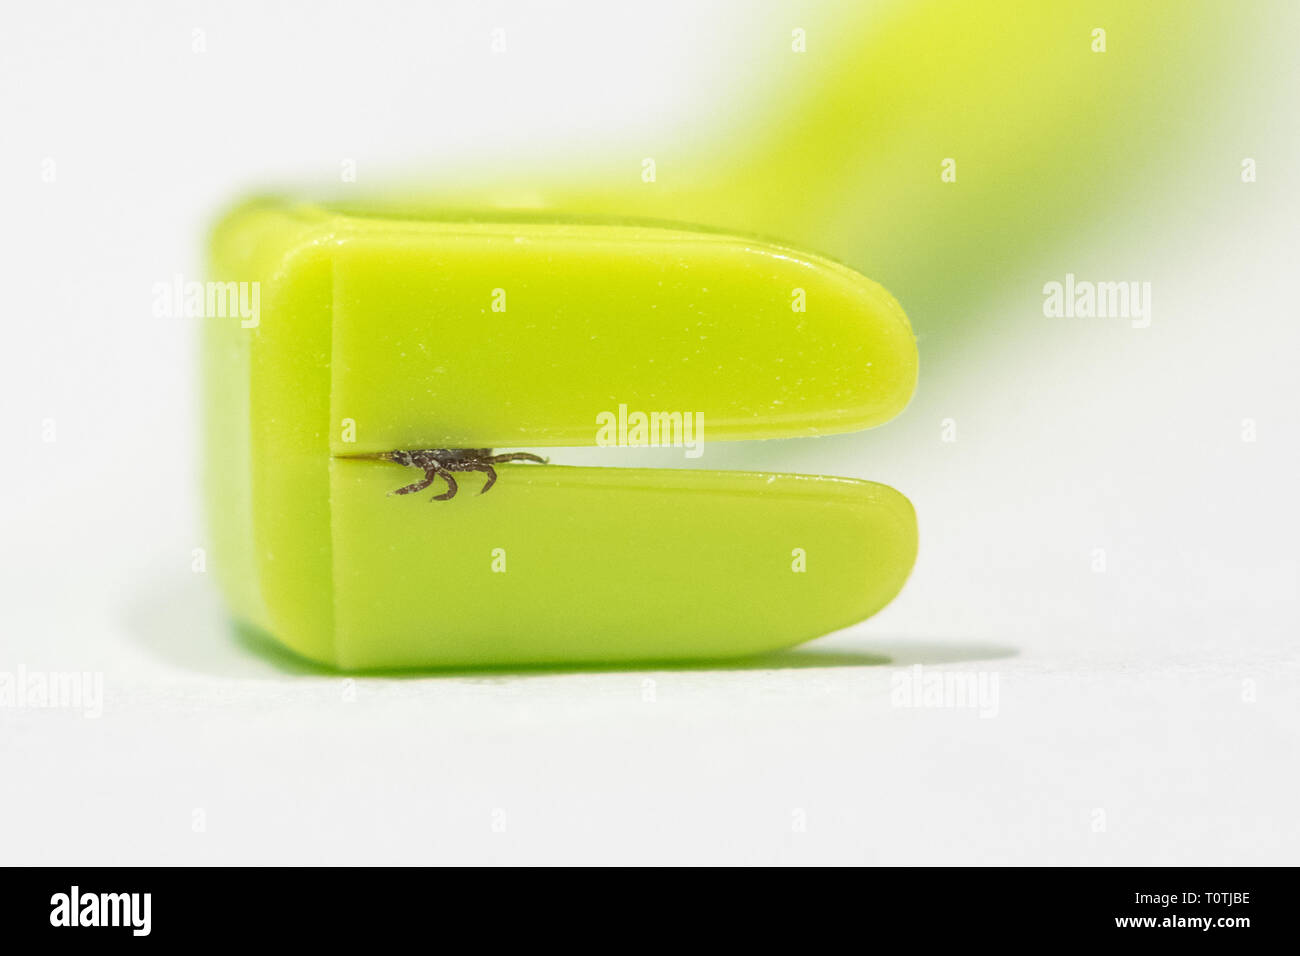 Tick remover tool - Tick Twister - with extracted sheep tick, after being removed from human skin, Scotland, UK - Stock Image